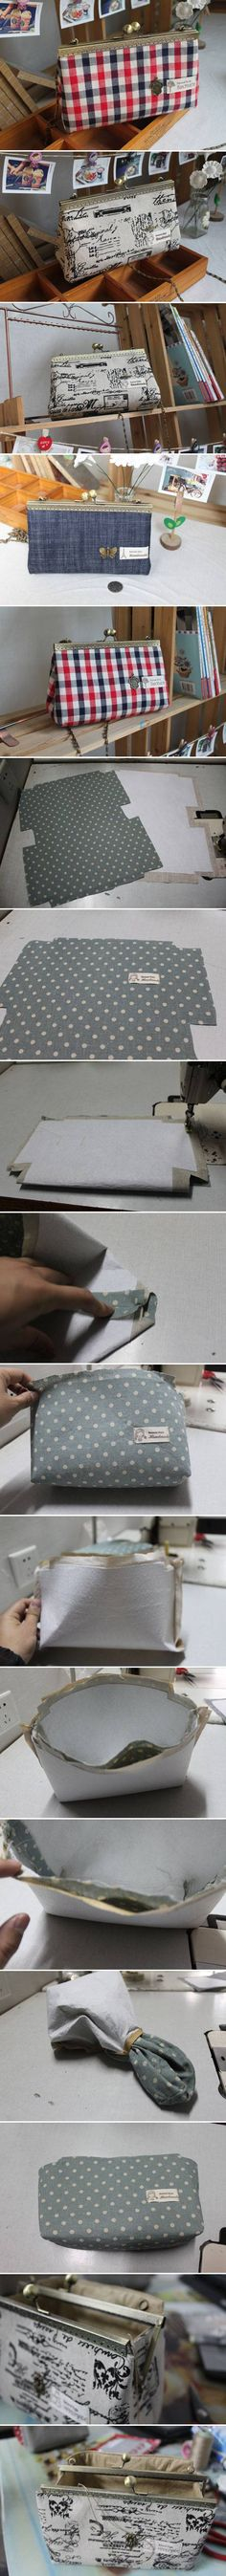 DIY Simple Handbag DIY Simple Handbag